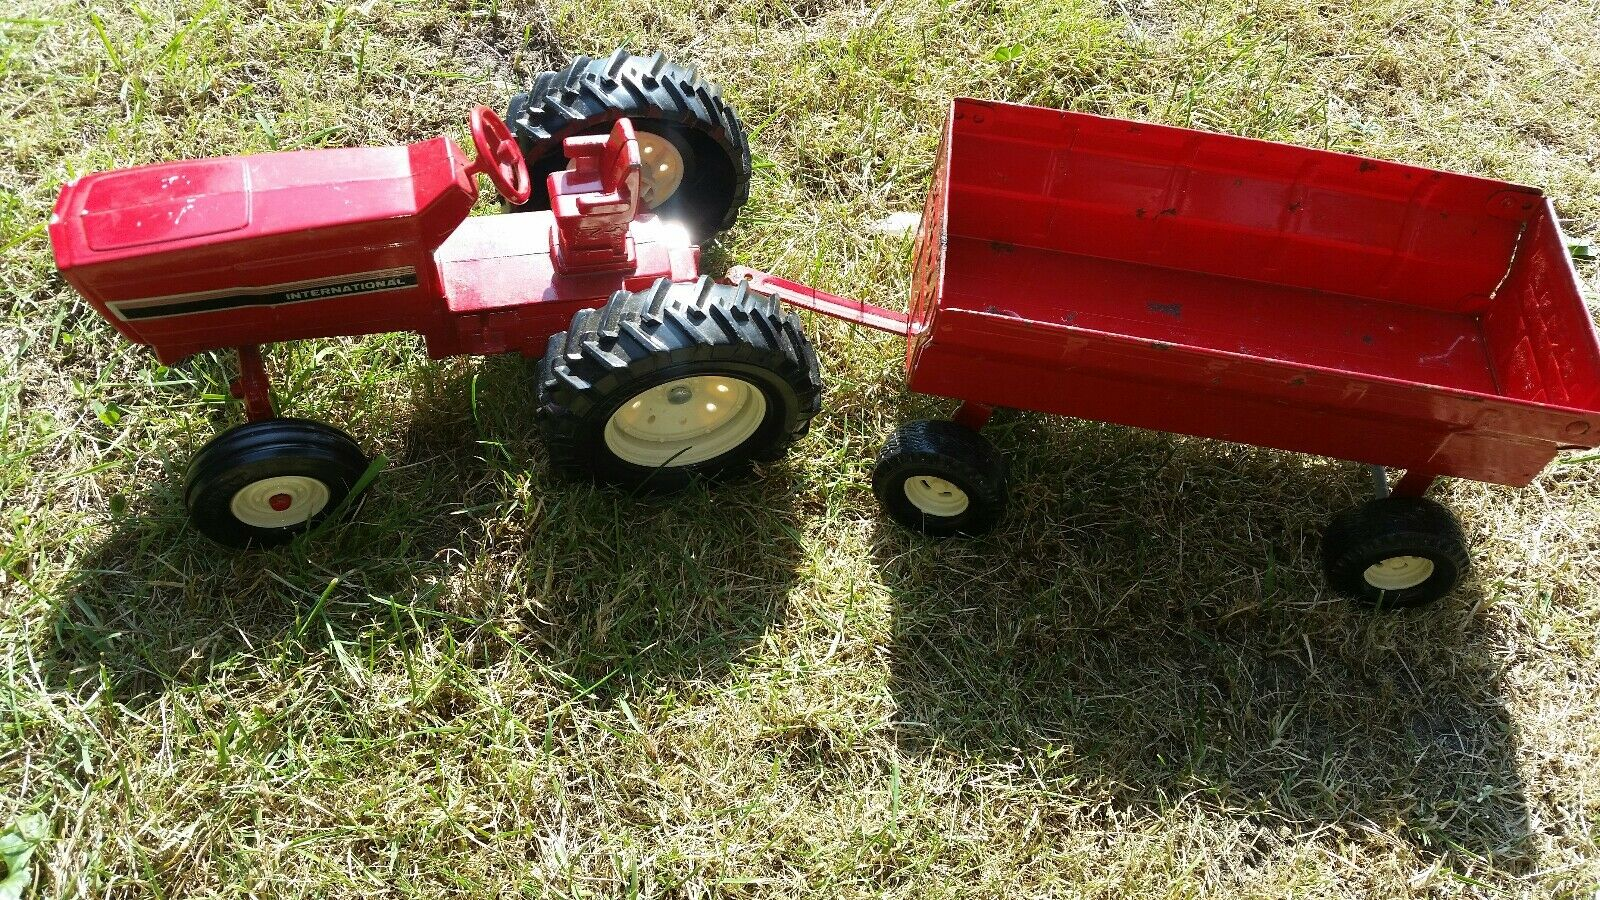 Vintage Ertl International Harvester Tractor & Steerable Trailer